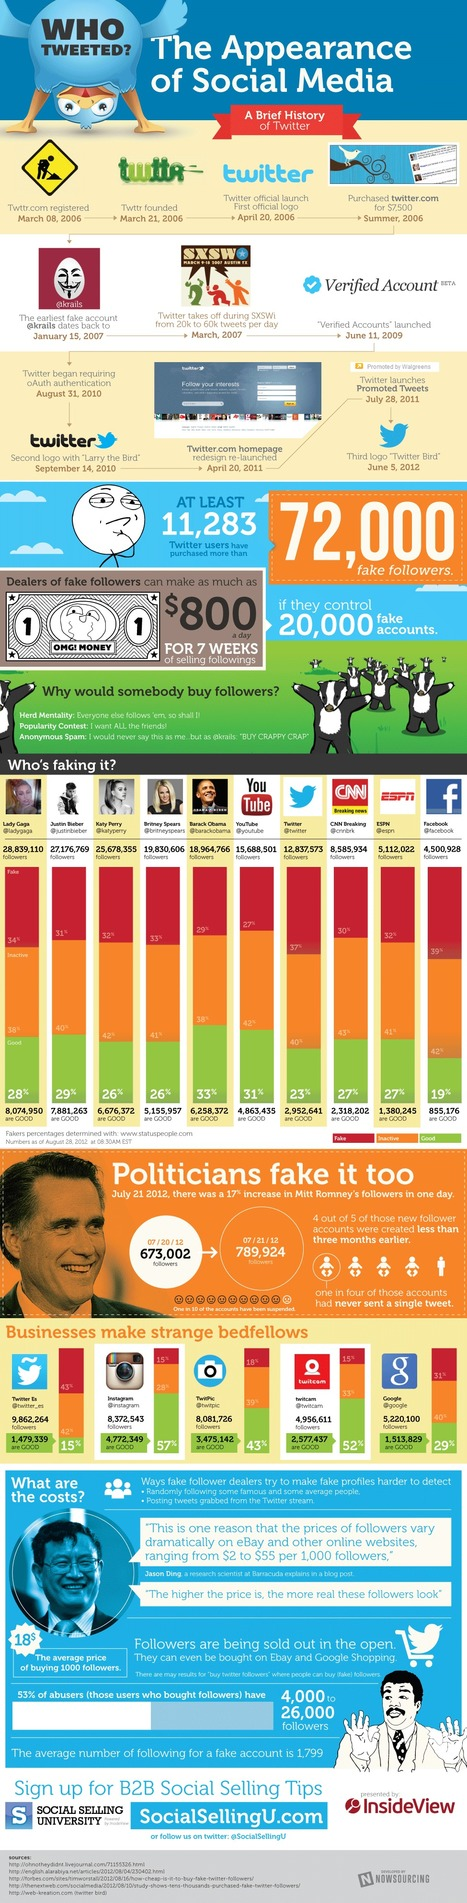 How Do You Sort Out Fake Followers From Real Ones on Twitter? [INFOGRAPHIC] | Twitter for Teachers | Scoop.it